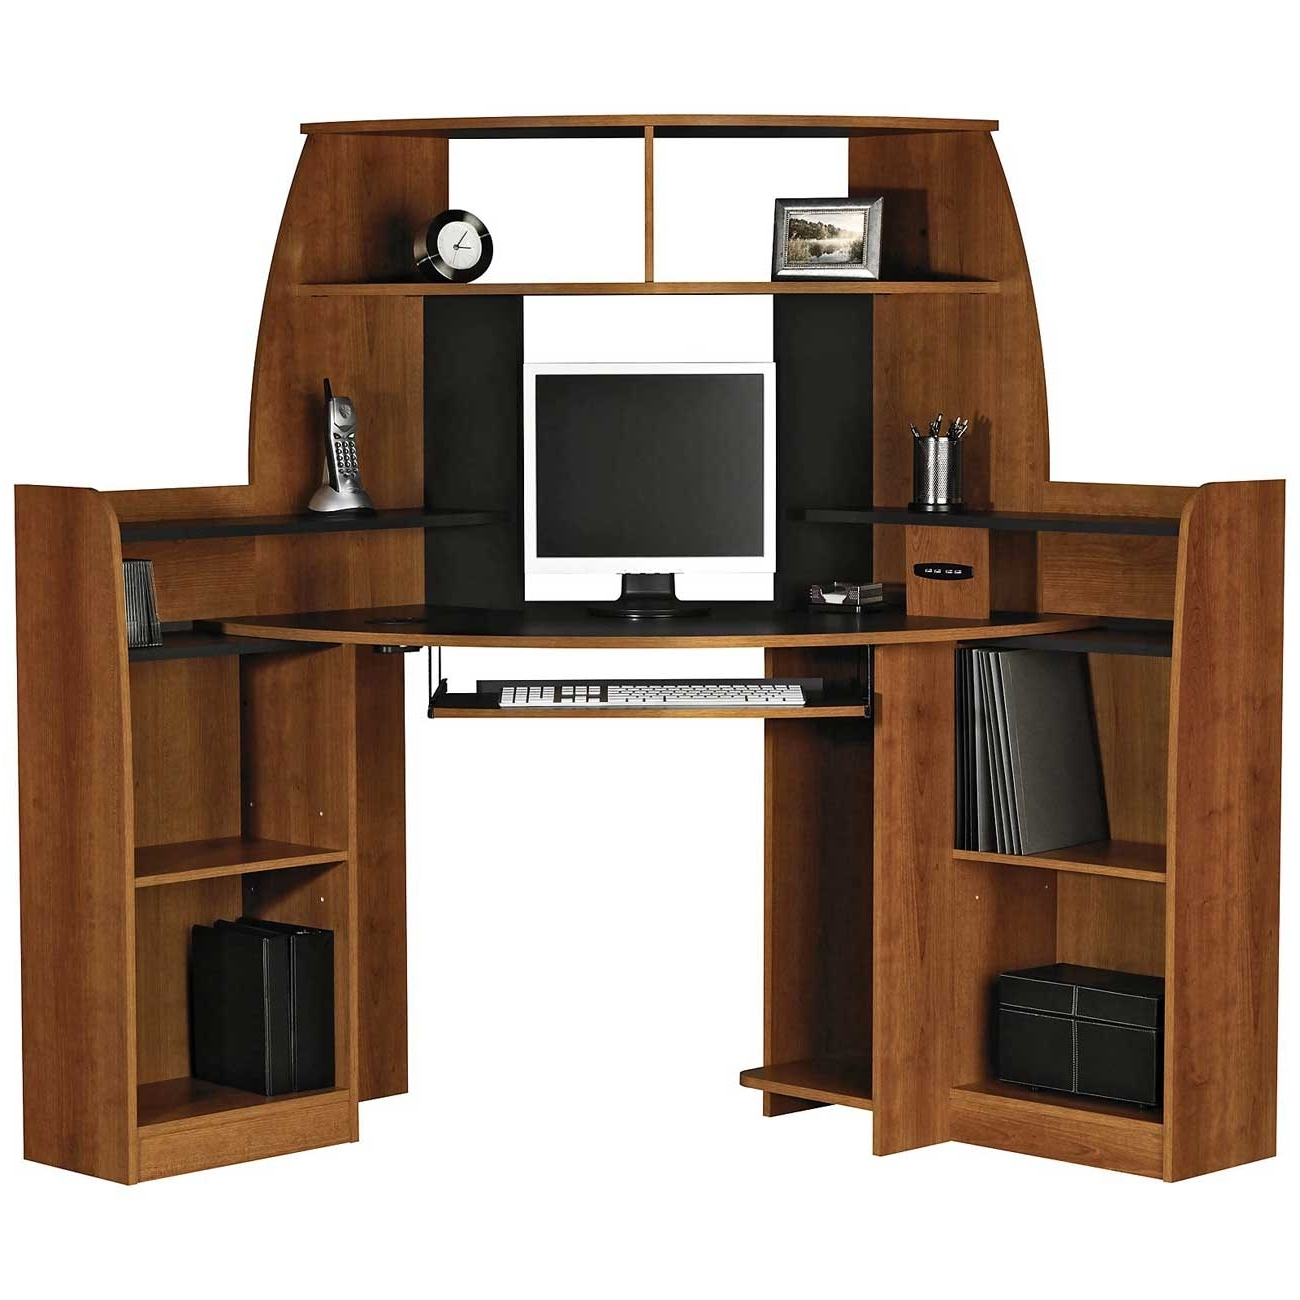 Uncategorized : Amazing Desks Inside Finest Ethan Allen Computer Pertaining To Newest Ethan Allen Computer Desks (Gallery 19 of 20)